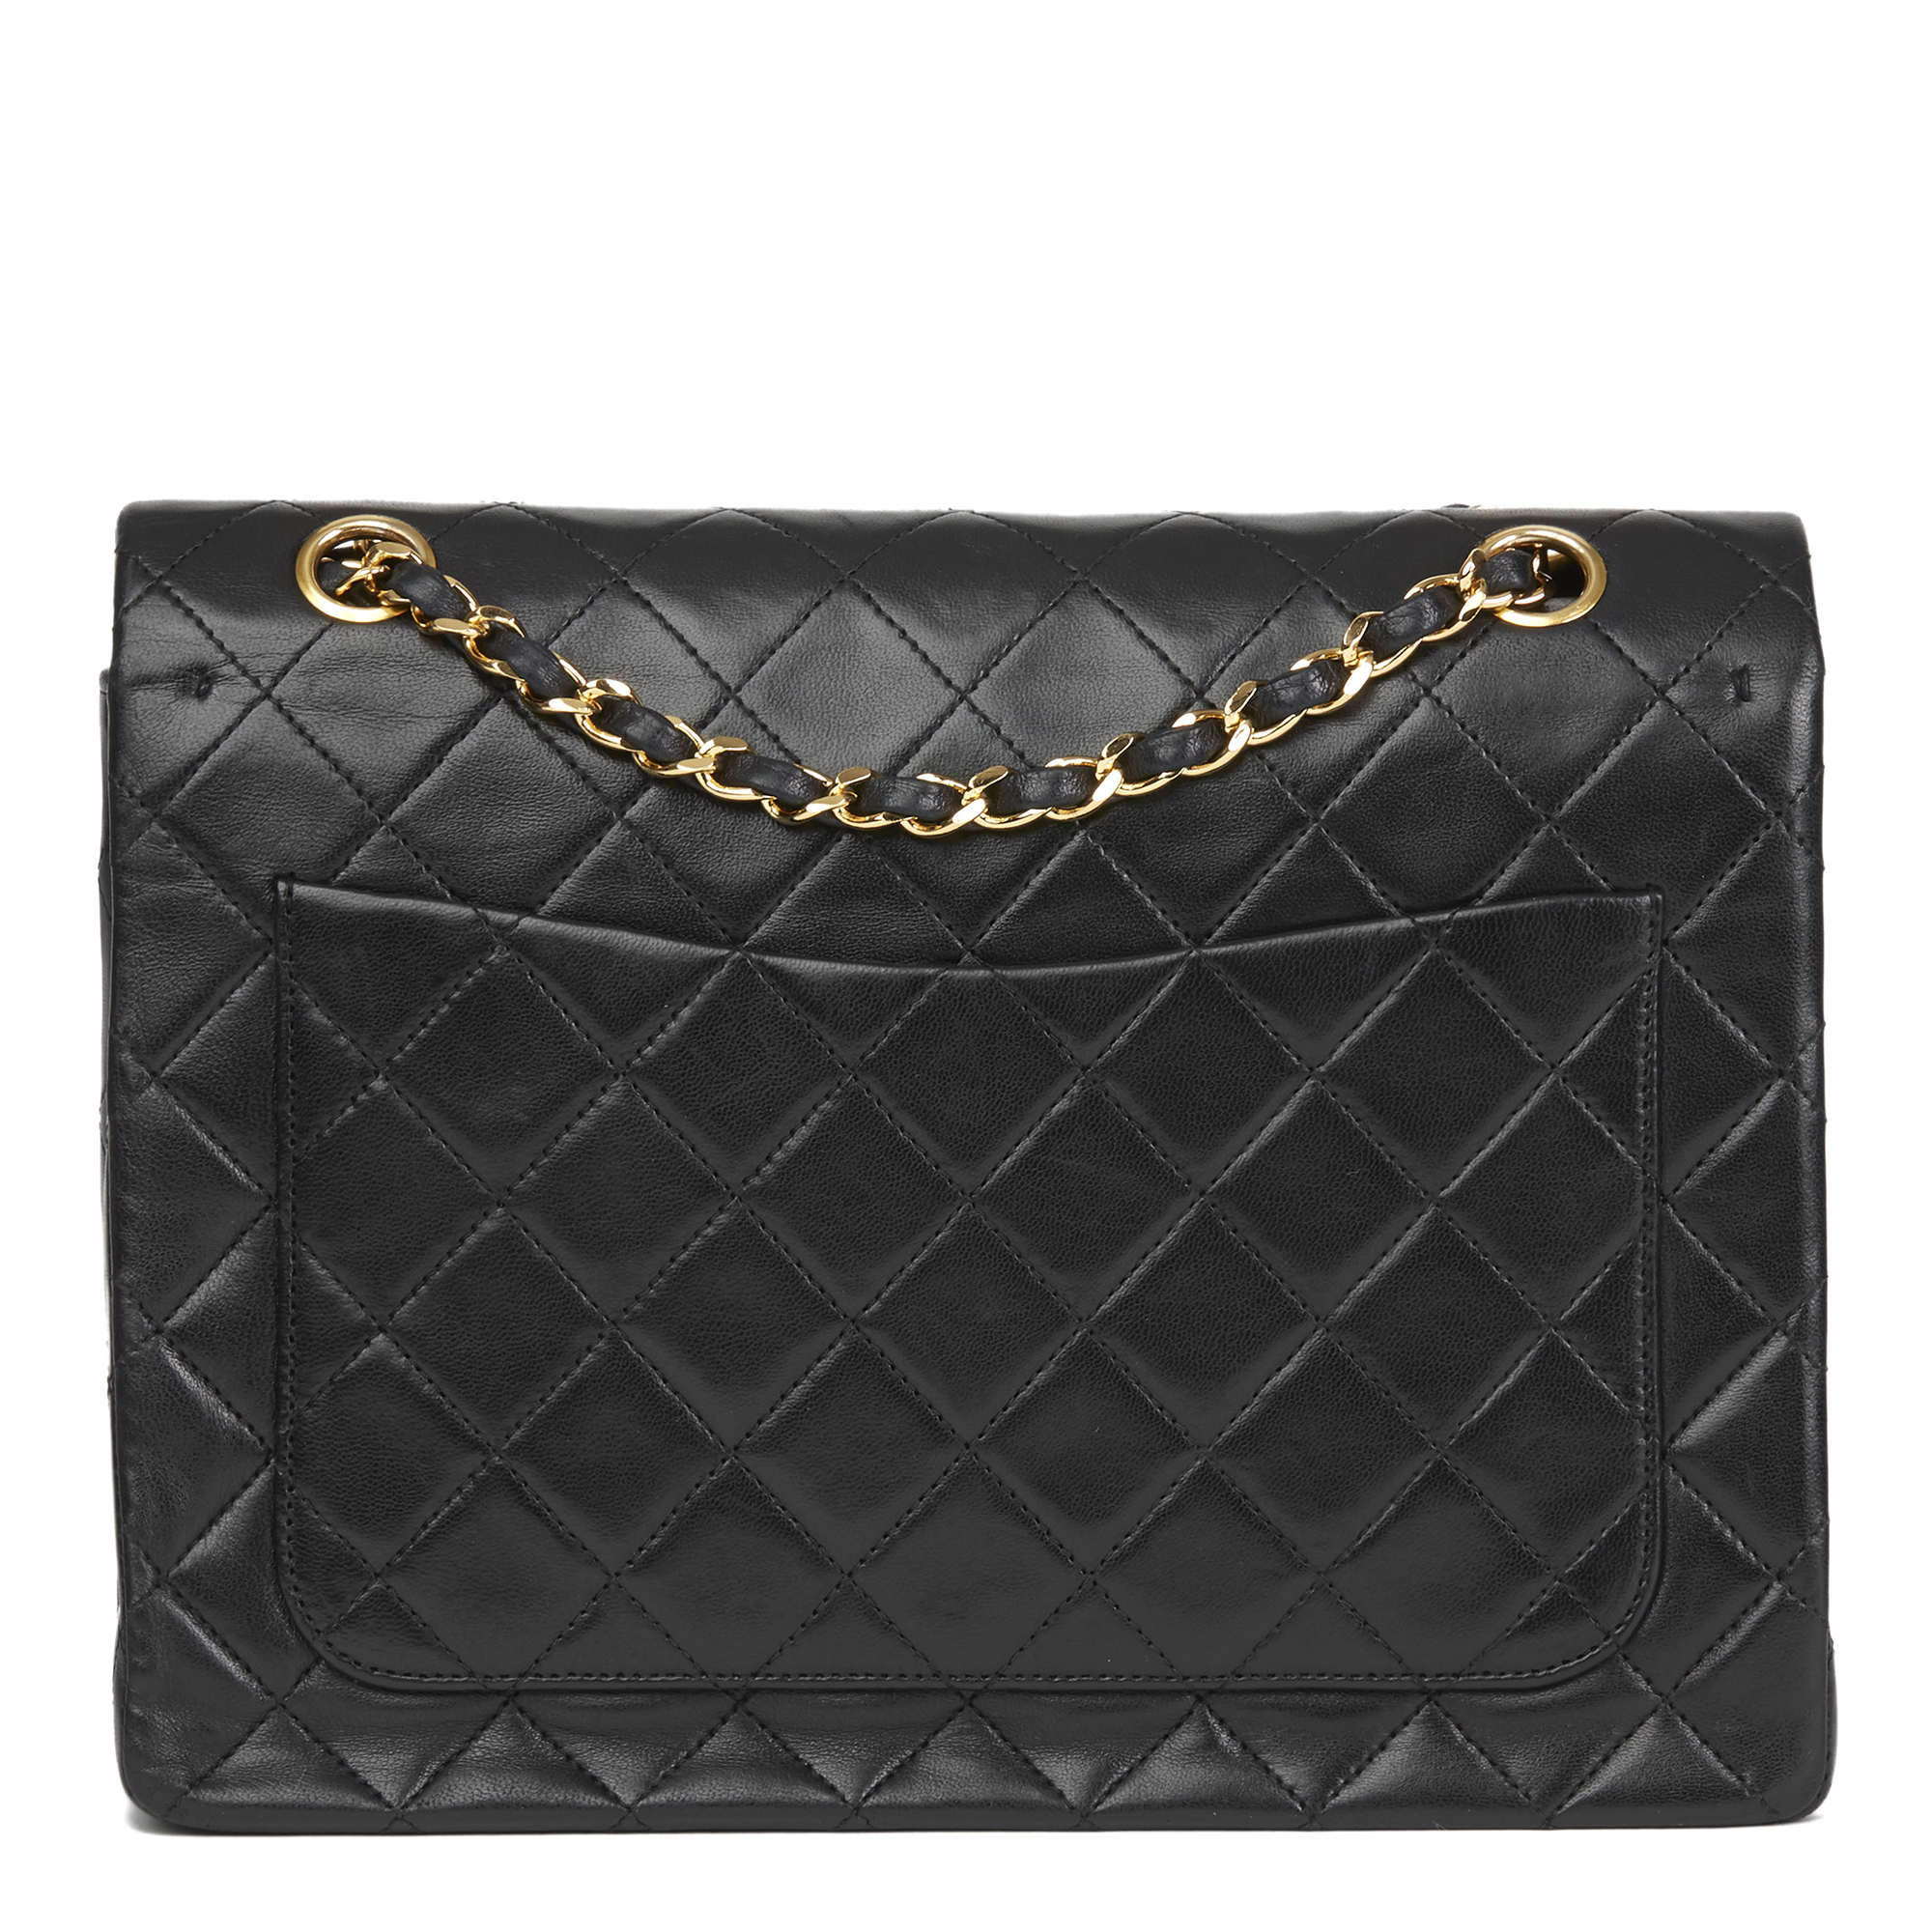 97e2fed37c9 Details about CHANEL BLACK QUILTED LAMBSKIN VINTAGE MEDIUM TALL CLASSIC  DOUBLE FLAP BAG